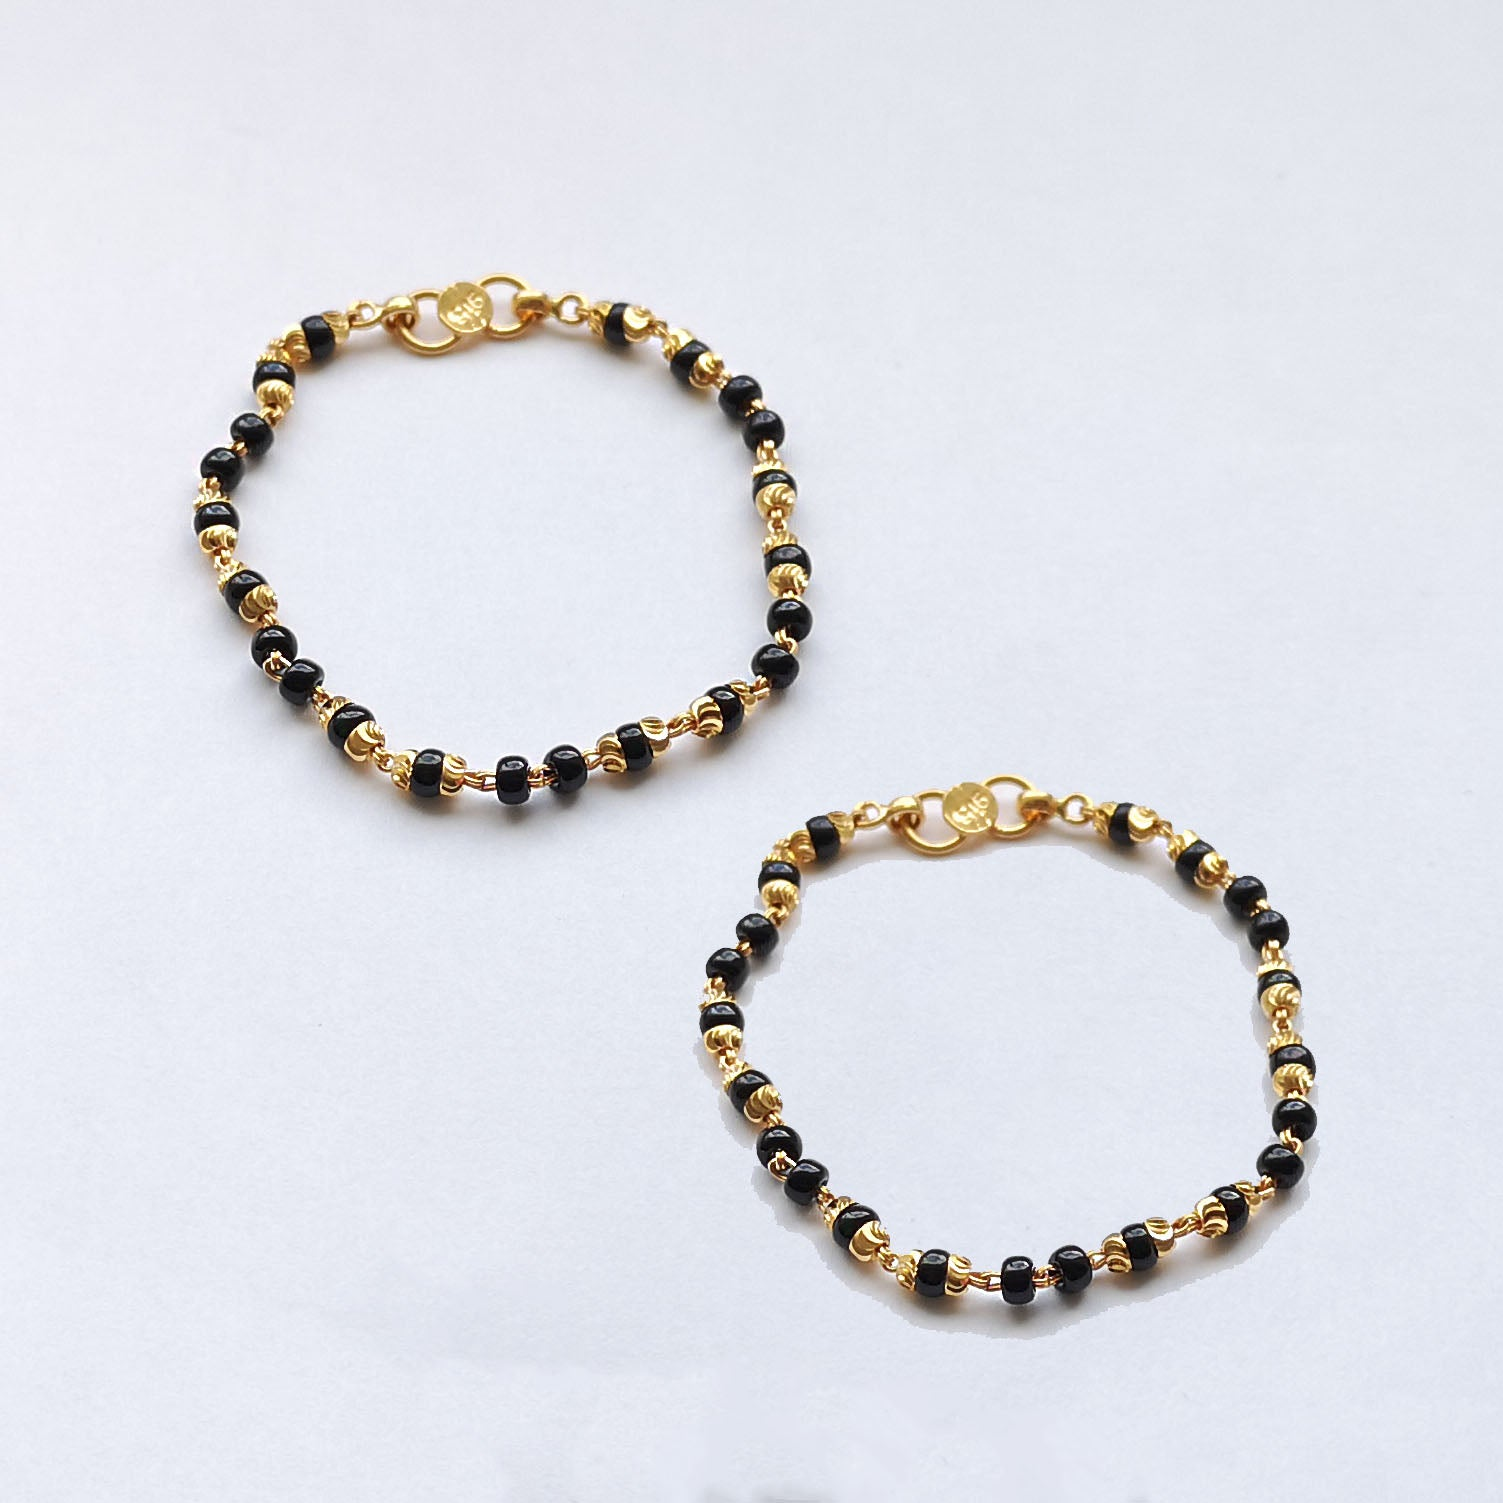 22ct Gold Children's Bracelets with Black Beads and Diamond Cut Design CBR-7910